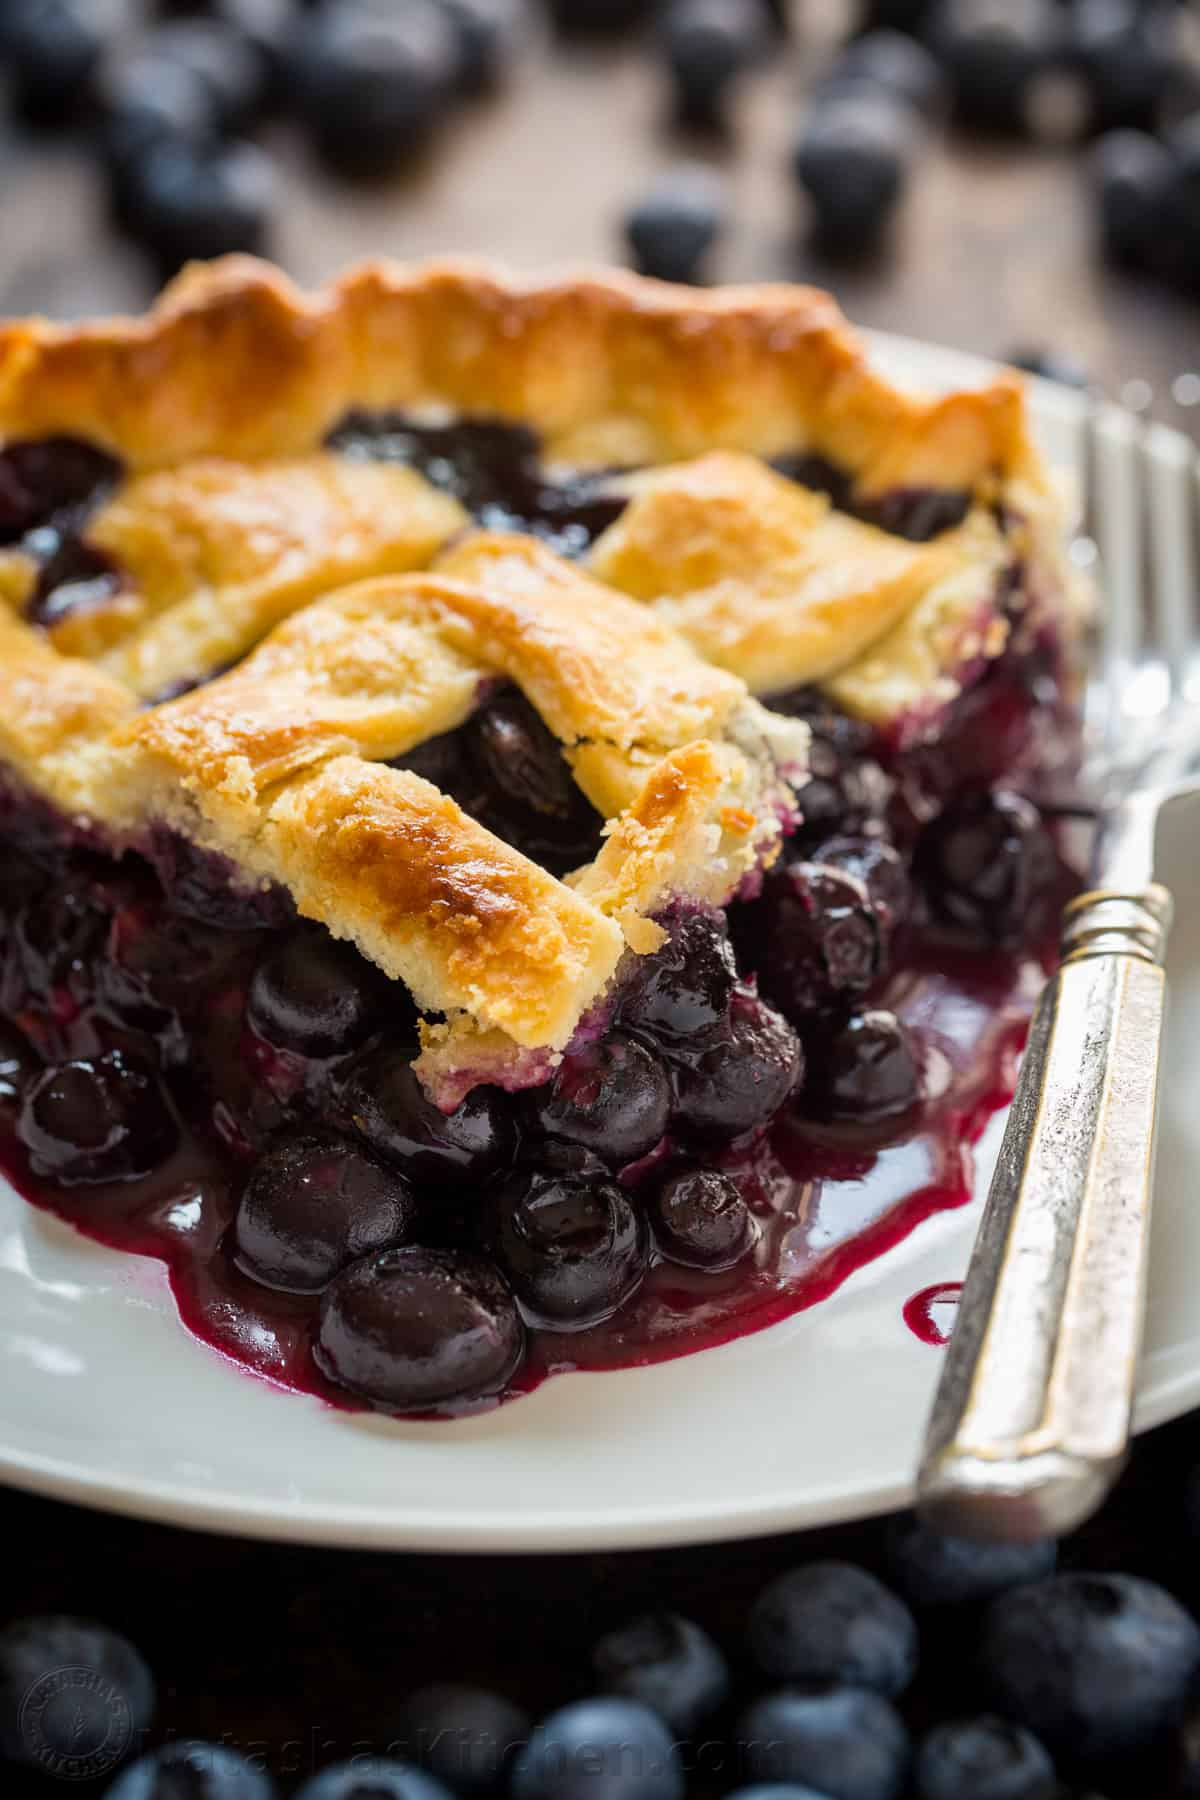 Easy Homemade Meals: Blueberry Pie Recipe (VIDEO)